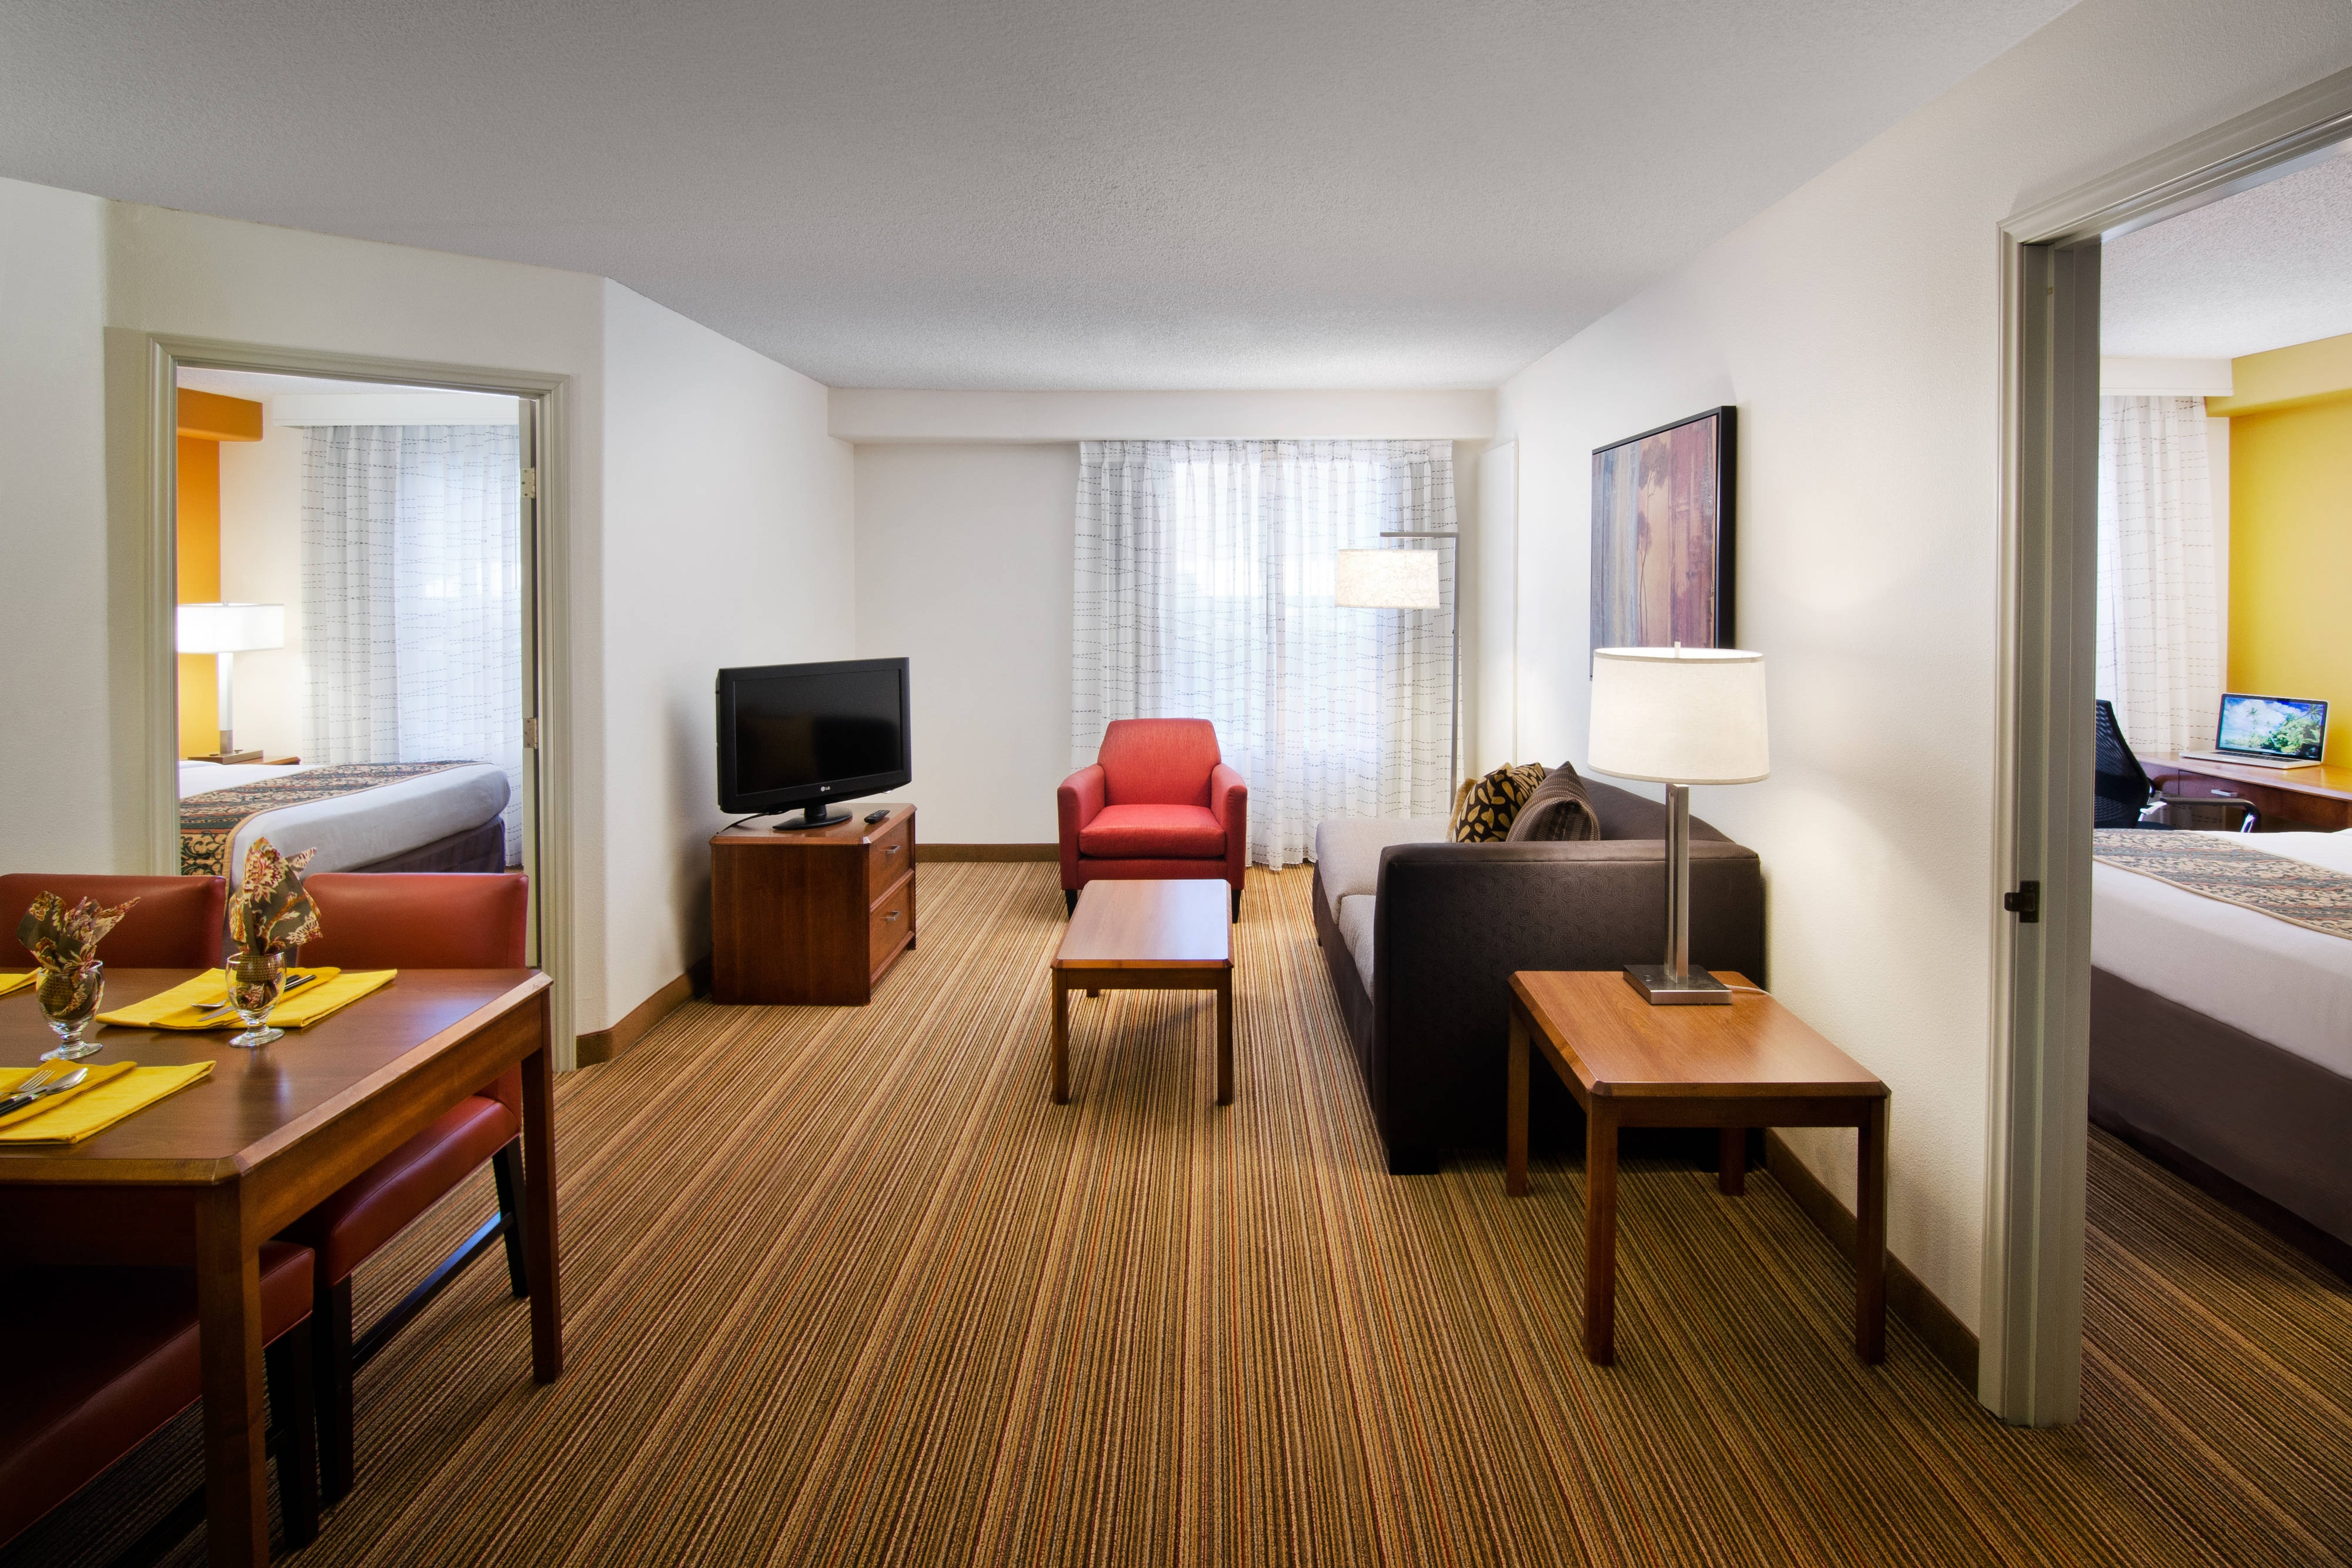 Suites in reno residence inn reno for Which hotels have 2 bedroom suites